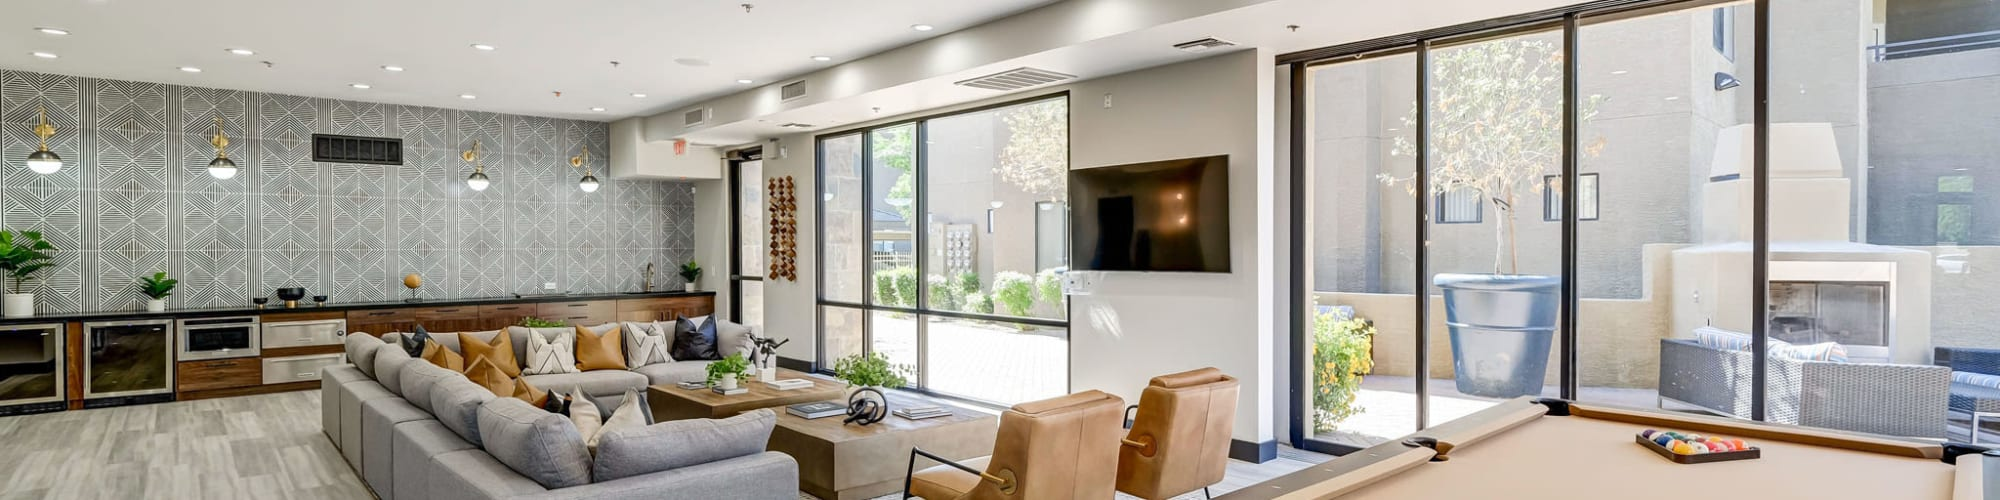 Floor plans at Spectra on 7th South in Phoenix, Arizona